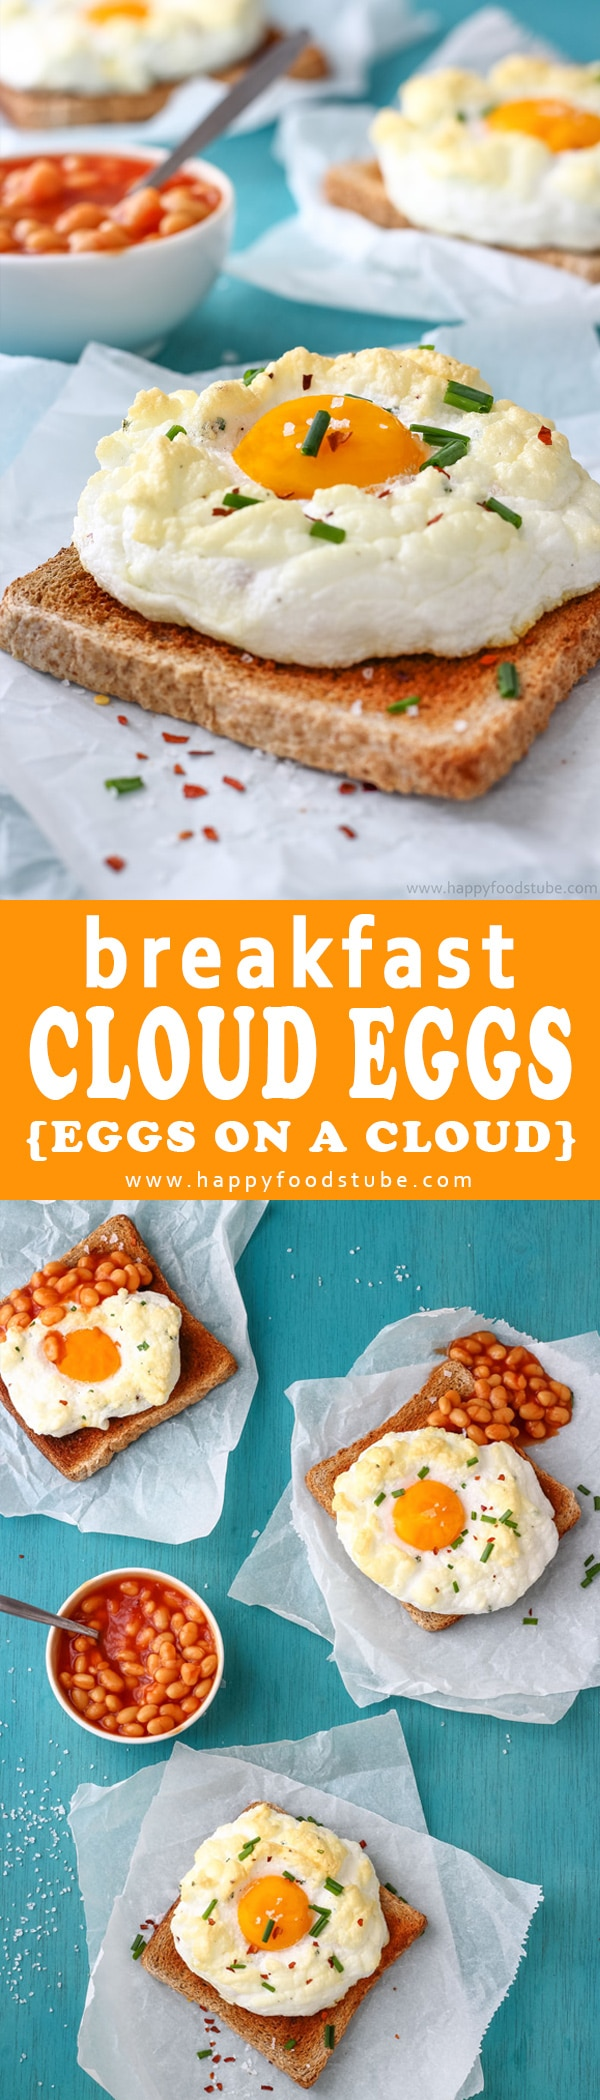 Easy Cloud Eggs Recipe also called Eggs on a Cloud. Its a fun way to make eggs for breakfast. How to make a cloud eggs? Here is super simple recipe and quick step by step video. Imagine fluffy whites, runny yolks and texture light as clouds. That's what eggs on a cloud are all about :)